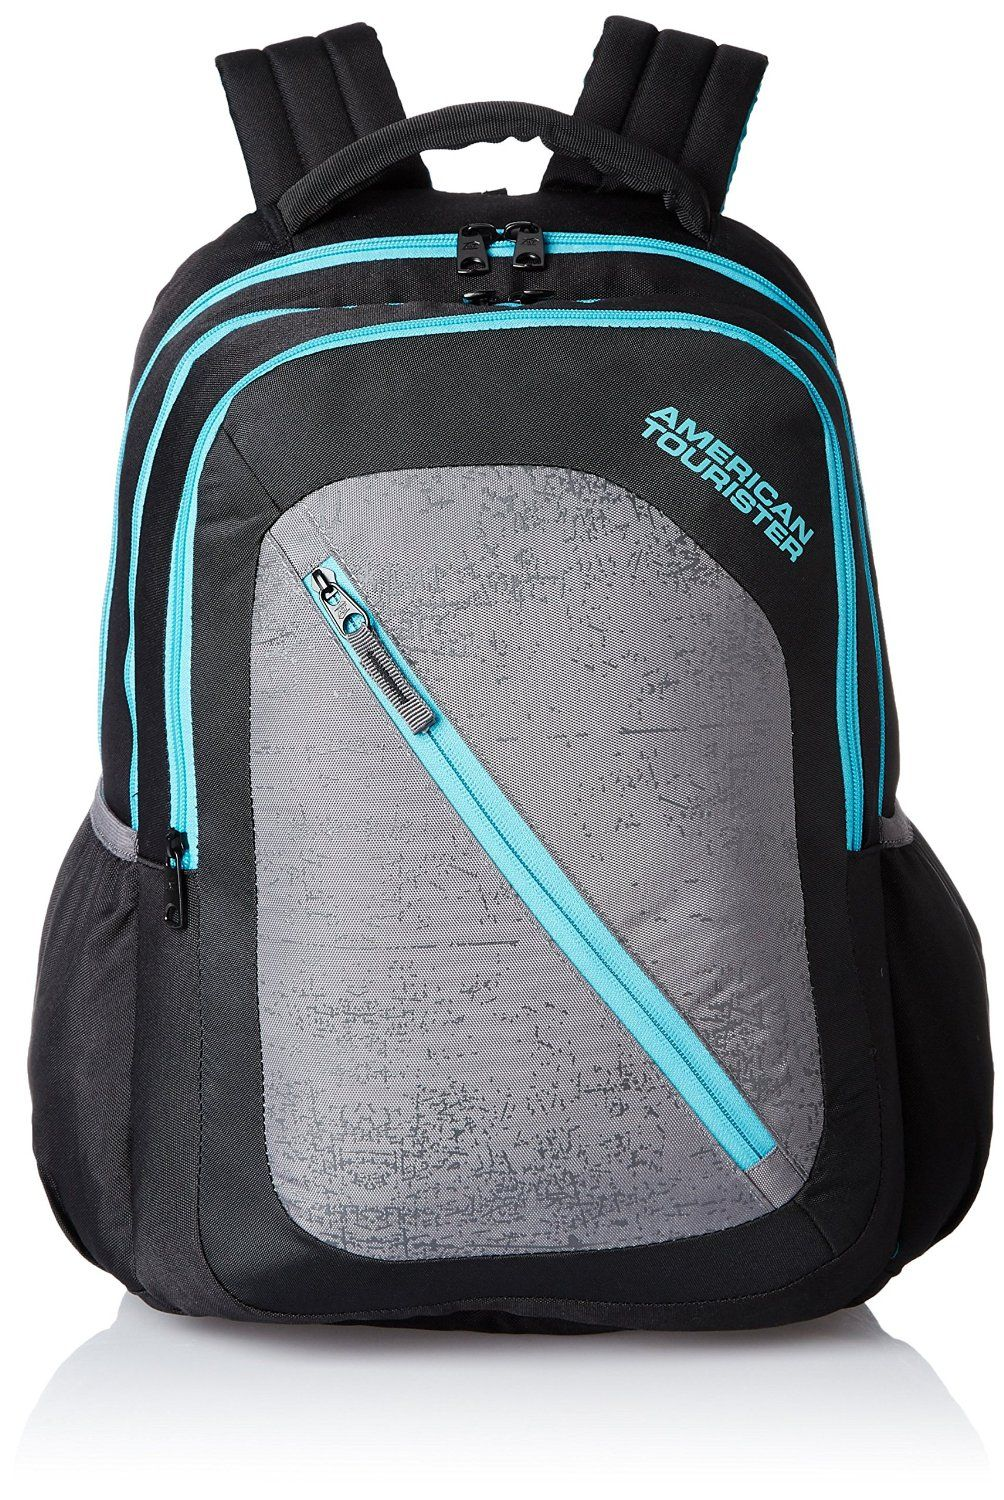 Best Backpacks For College Students With Laptops India- Fenix ... 2e3ad7ea2c61d